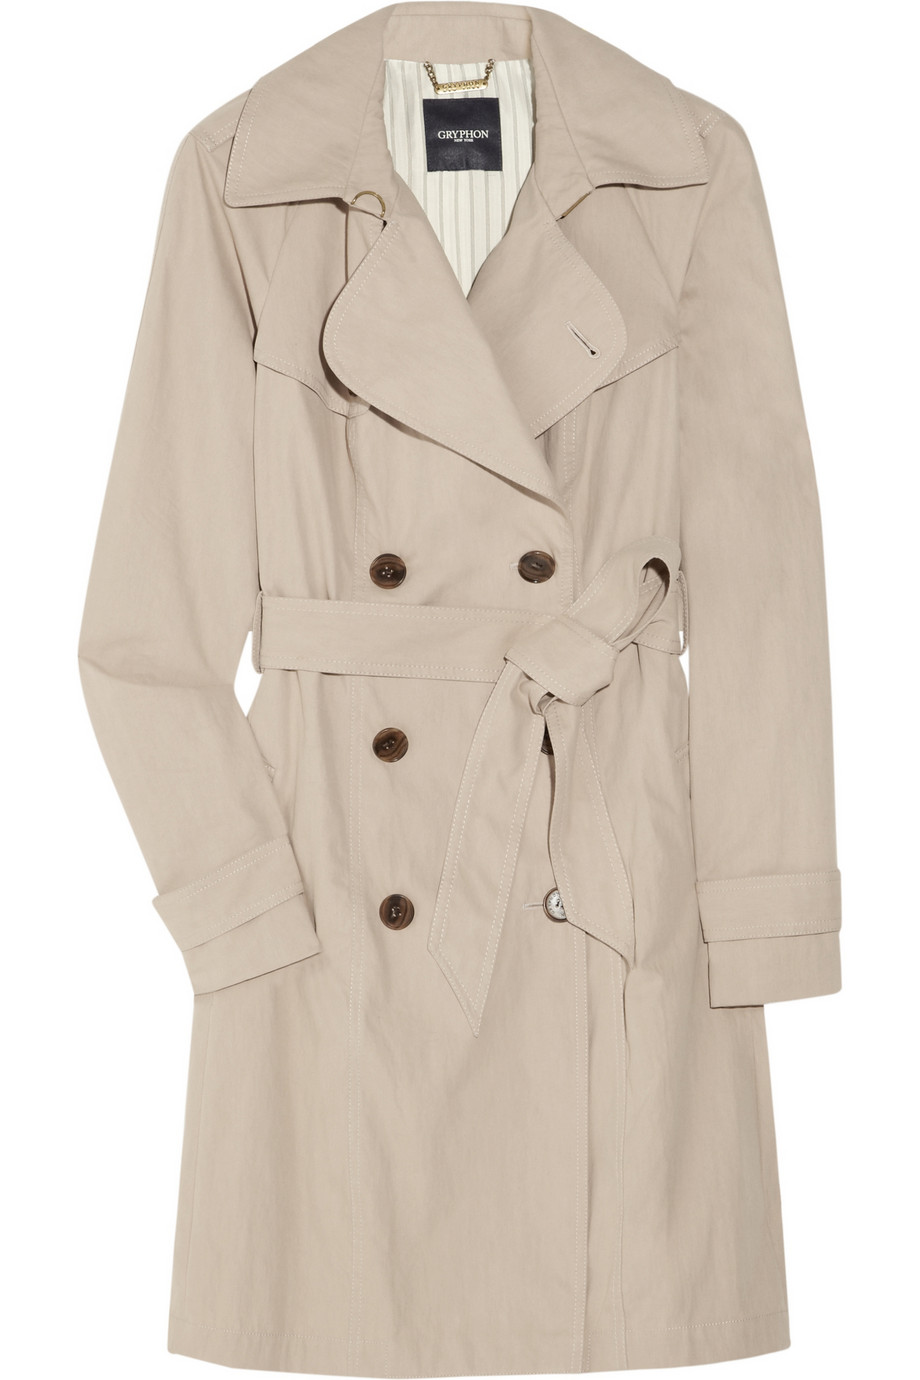 Pleated cotton-blend trench coat | Gryphon | 85% off | THE OUTNET